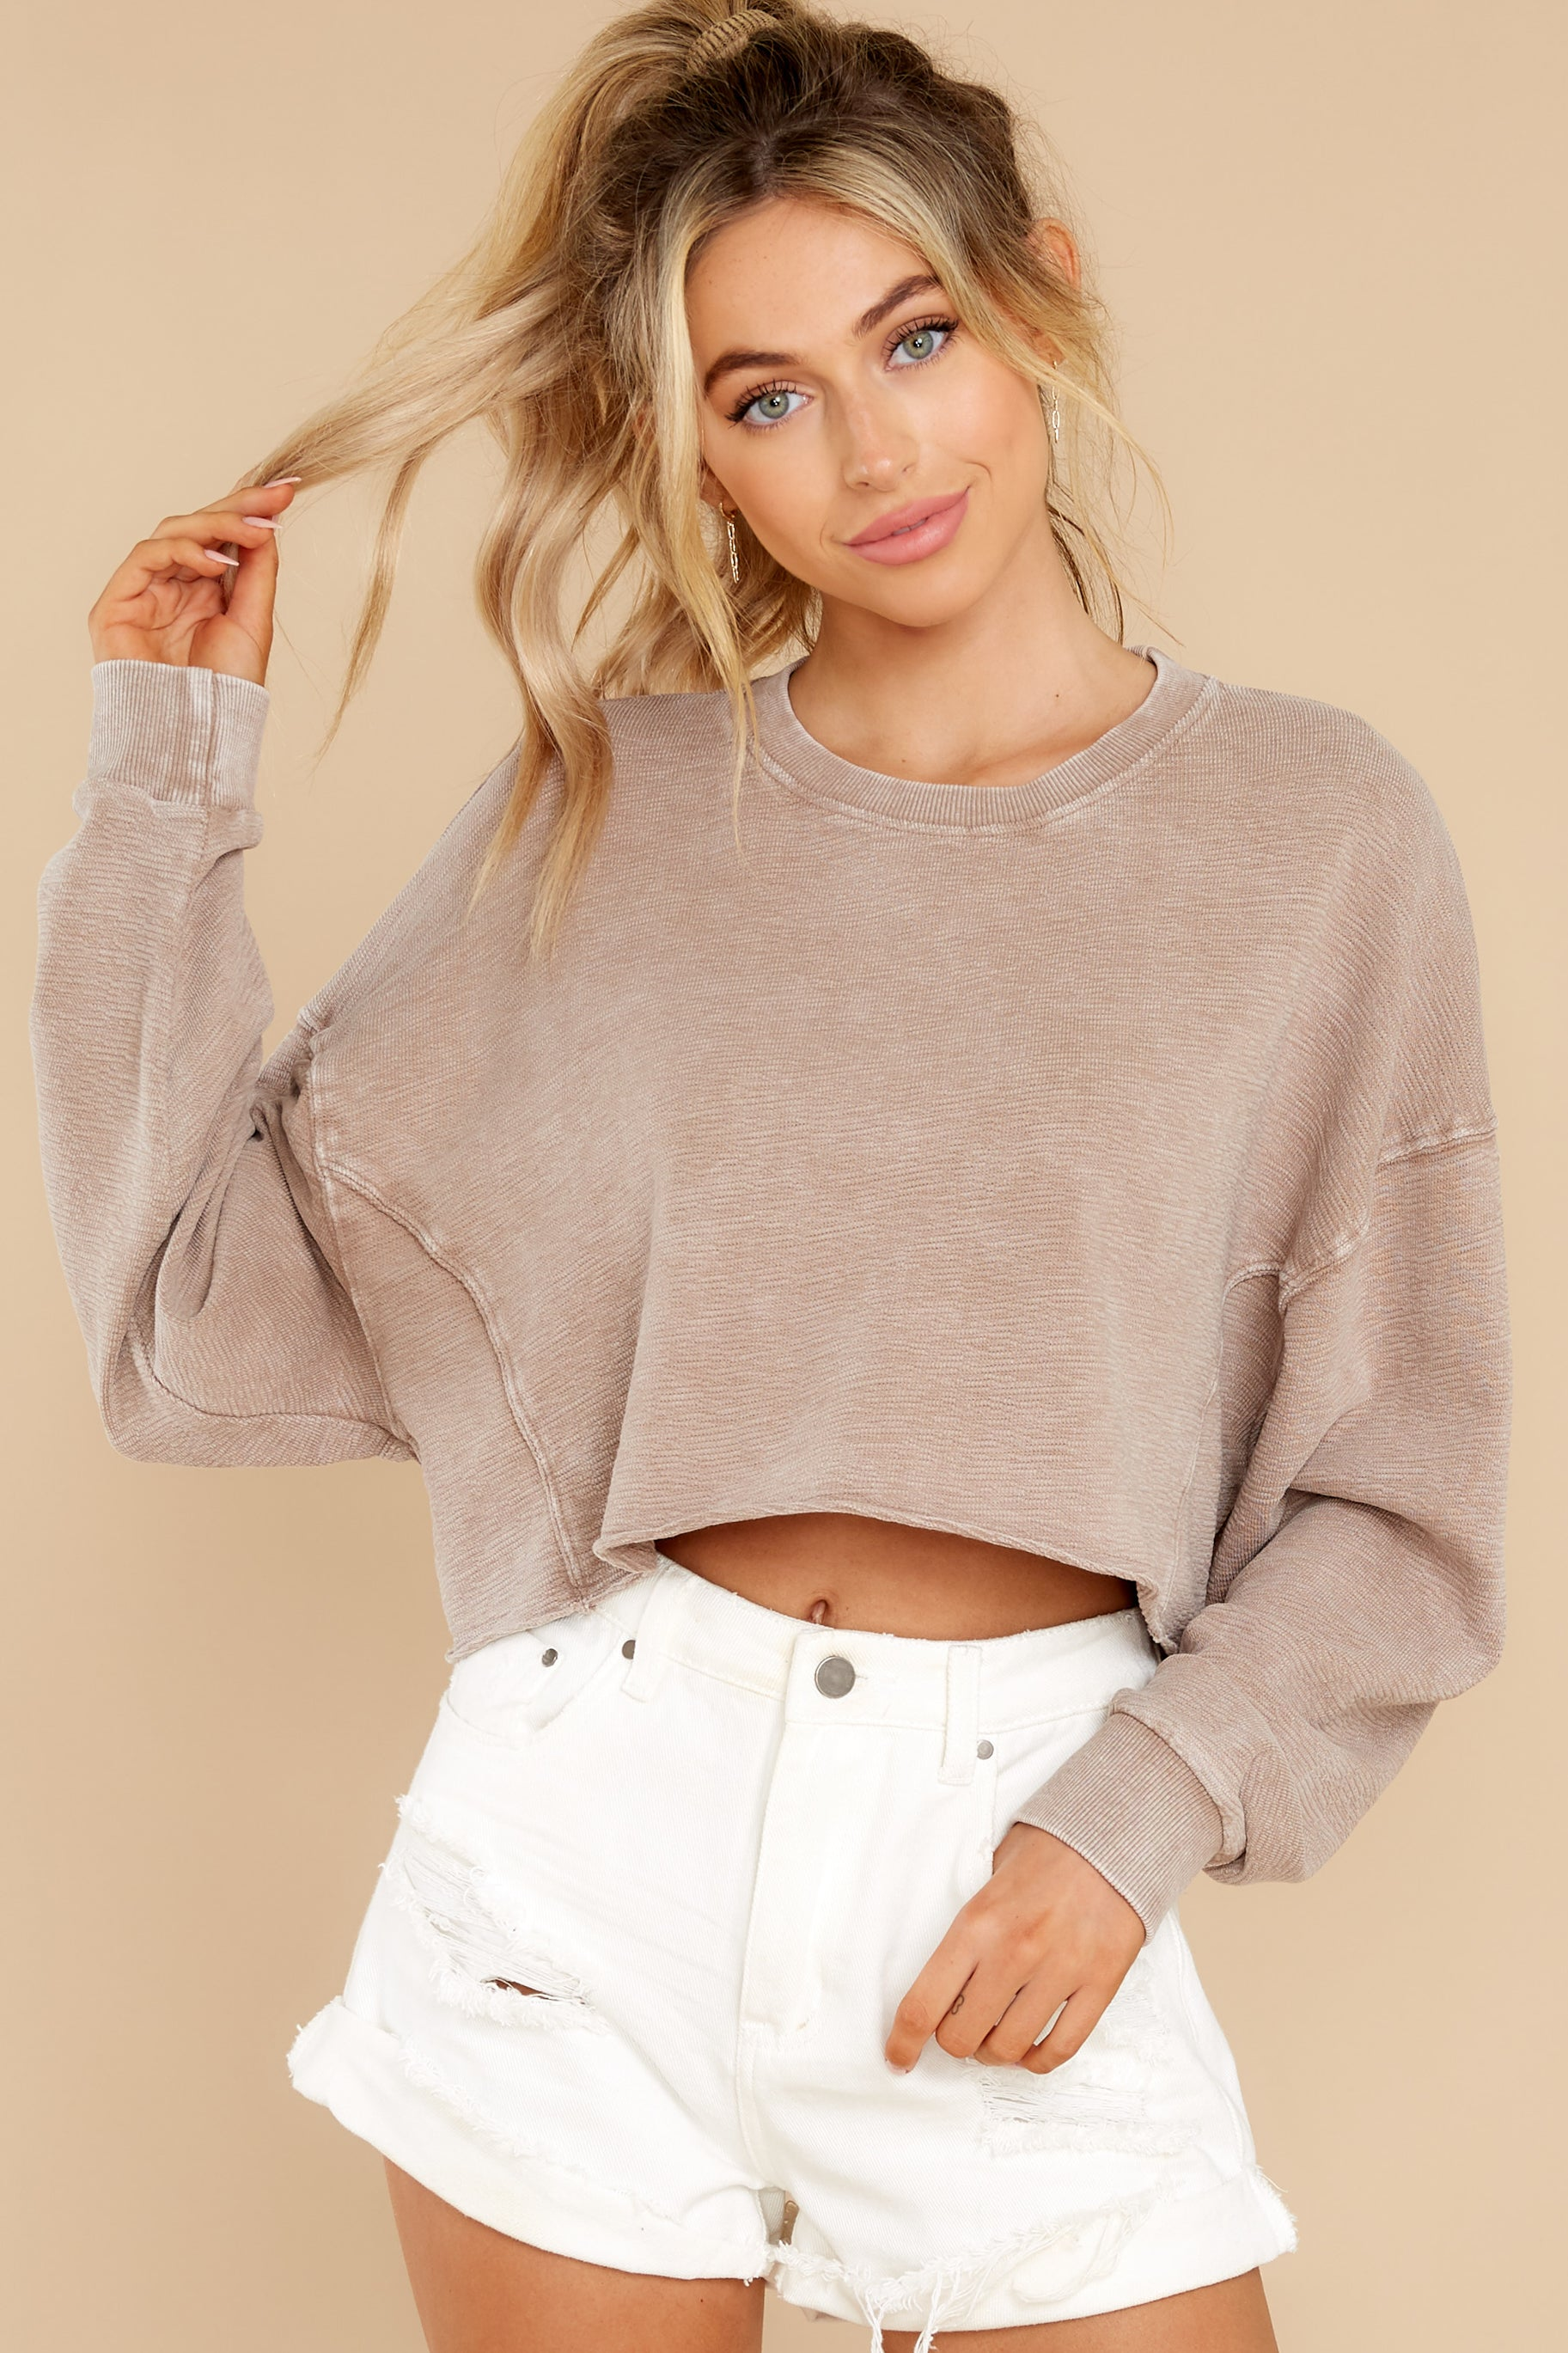 1 Anywhere With You Latte Crop Sweatshirt at reddress.com